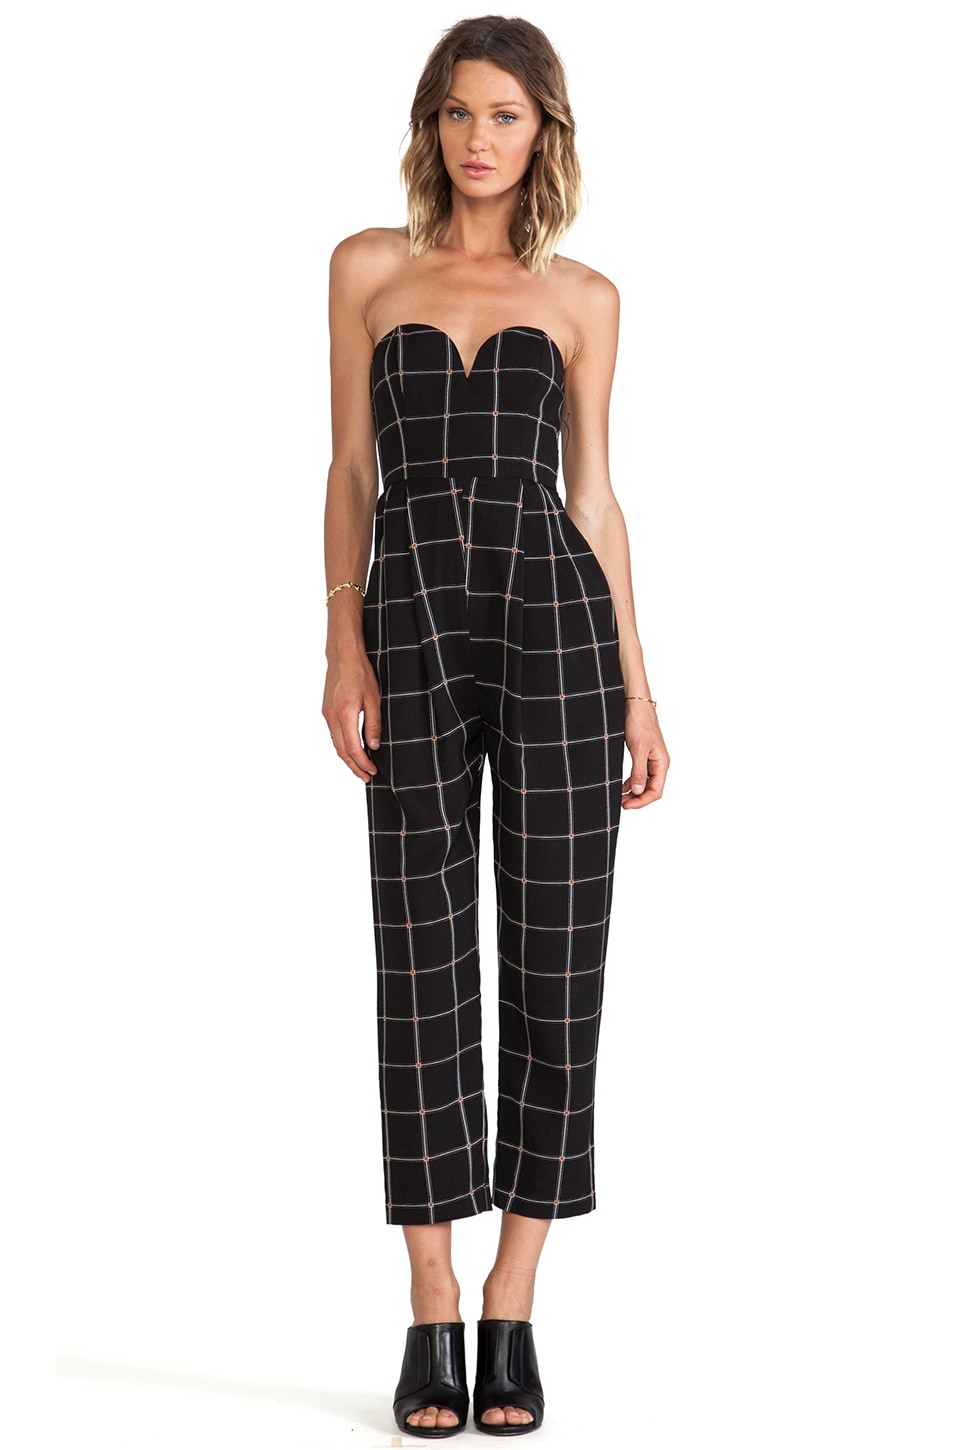 Shona Joy The Paralleled Bustier Jumpsuit in Check